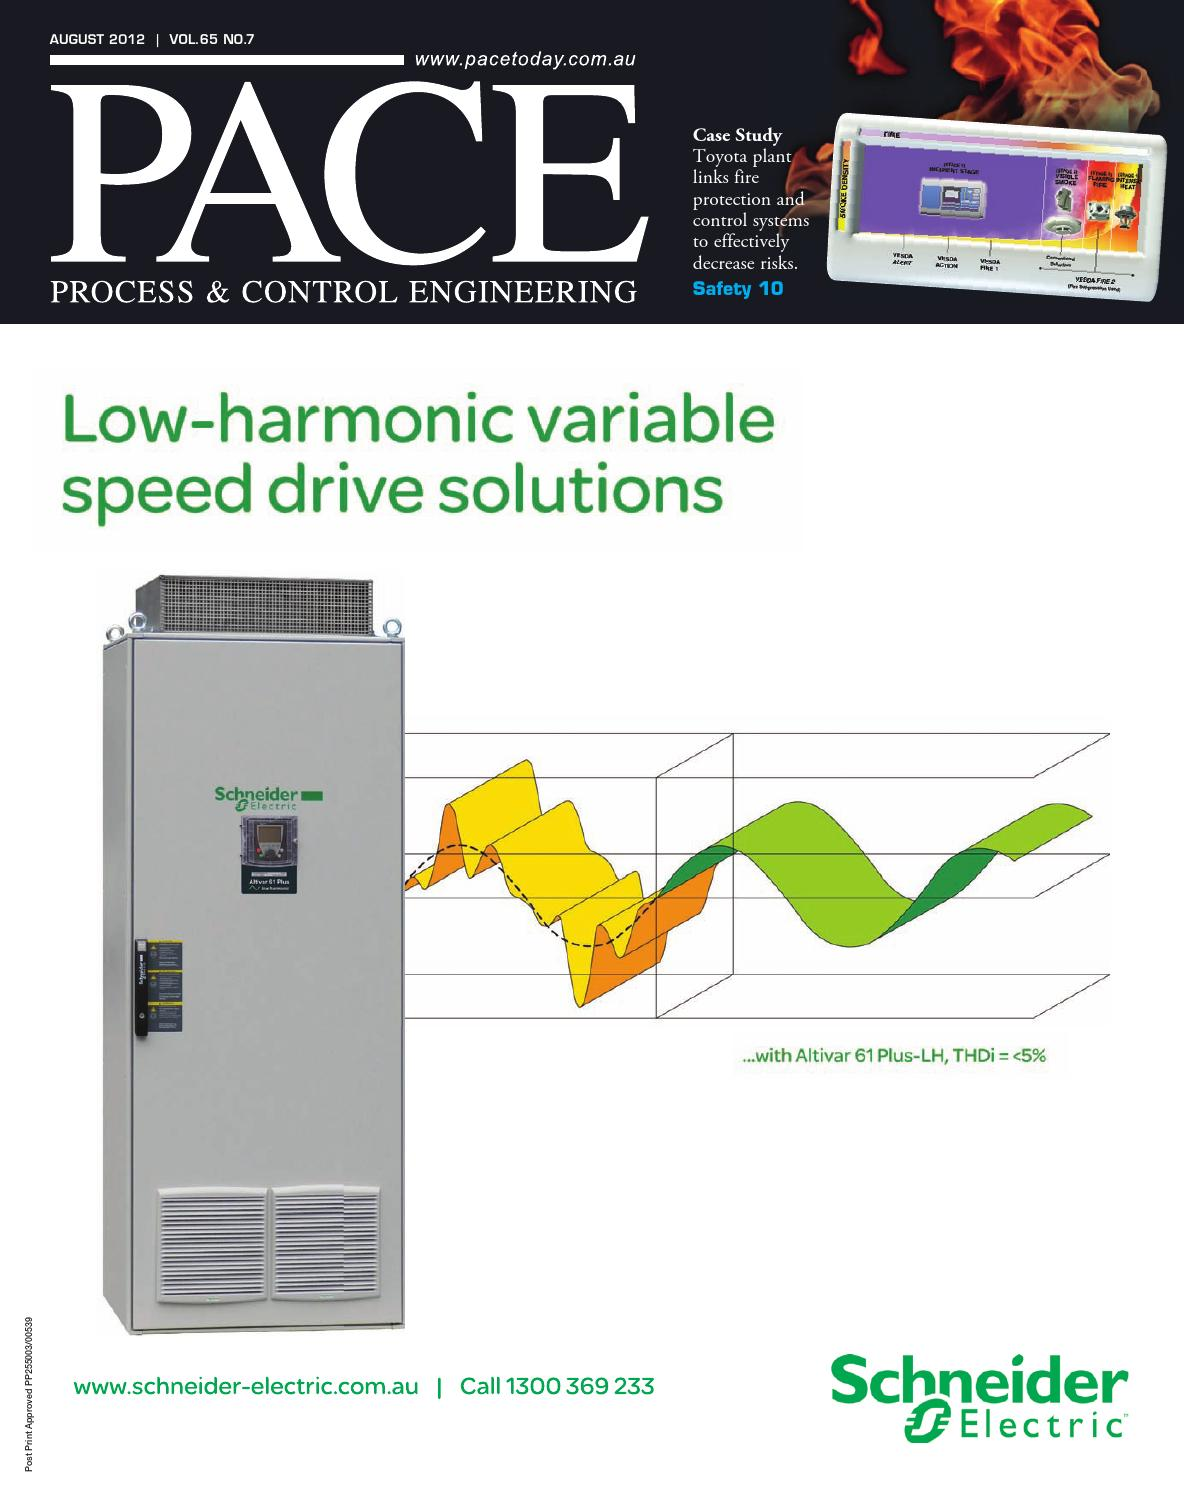 Pace Process Control Engineering August 2012 By Primecreative Altivar 61 Wiring Diagram Issuu